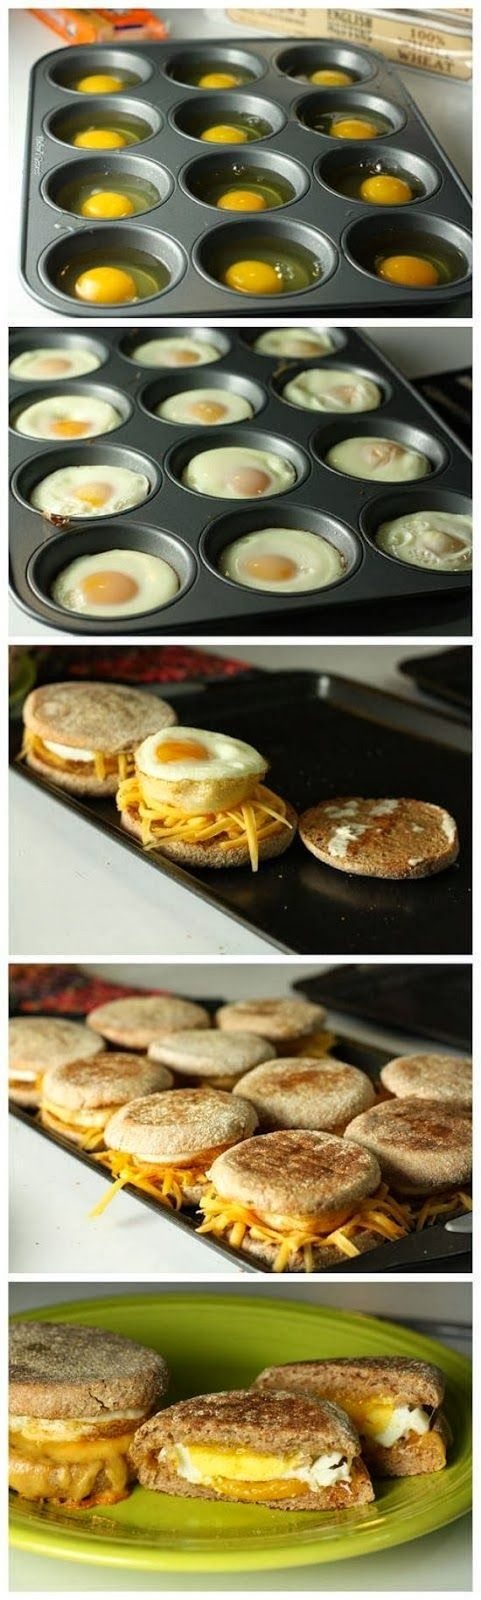 Wonder Nice Photozz: Egg and Cheese Breakfast Sandwiches – fun slumber party breakfast!